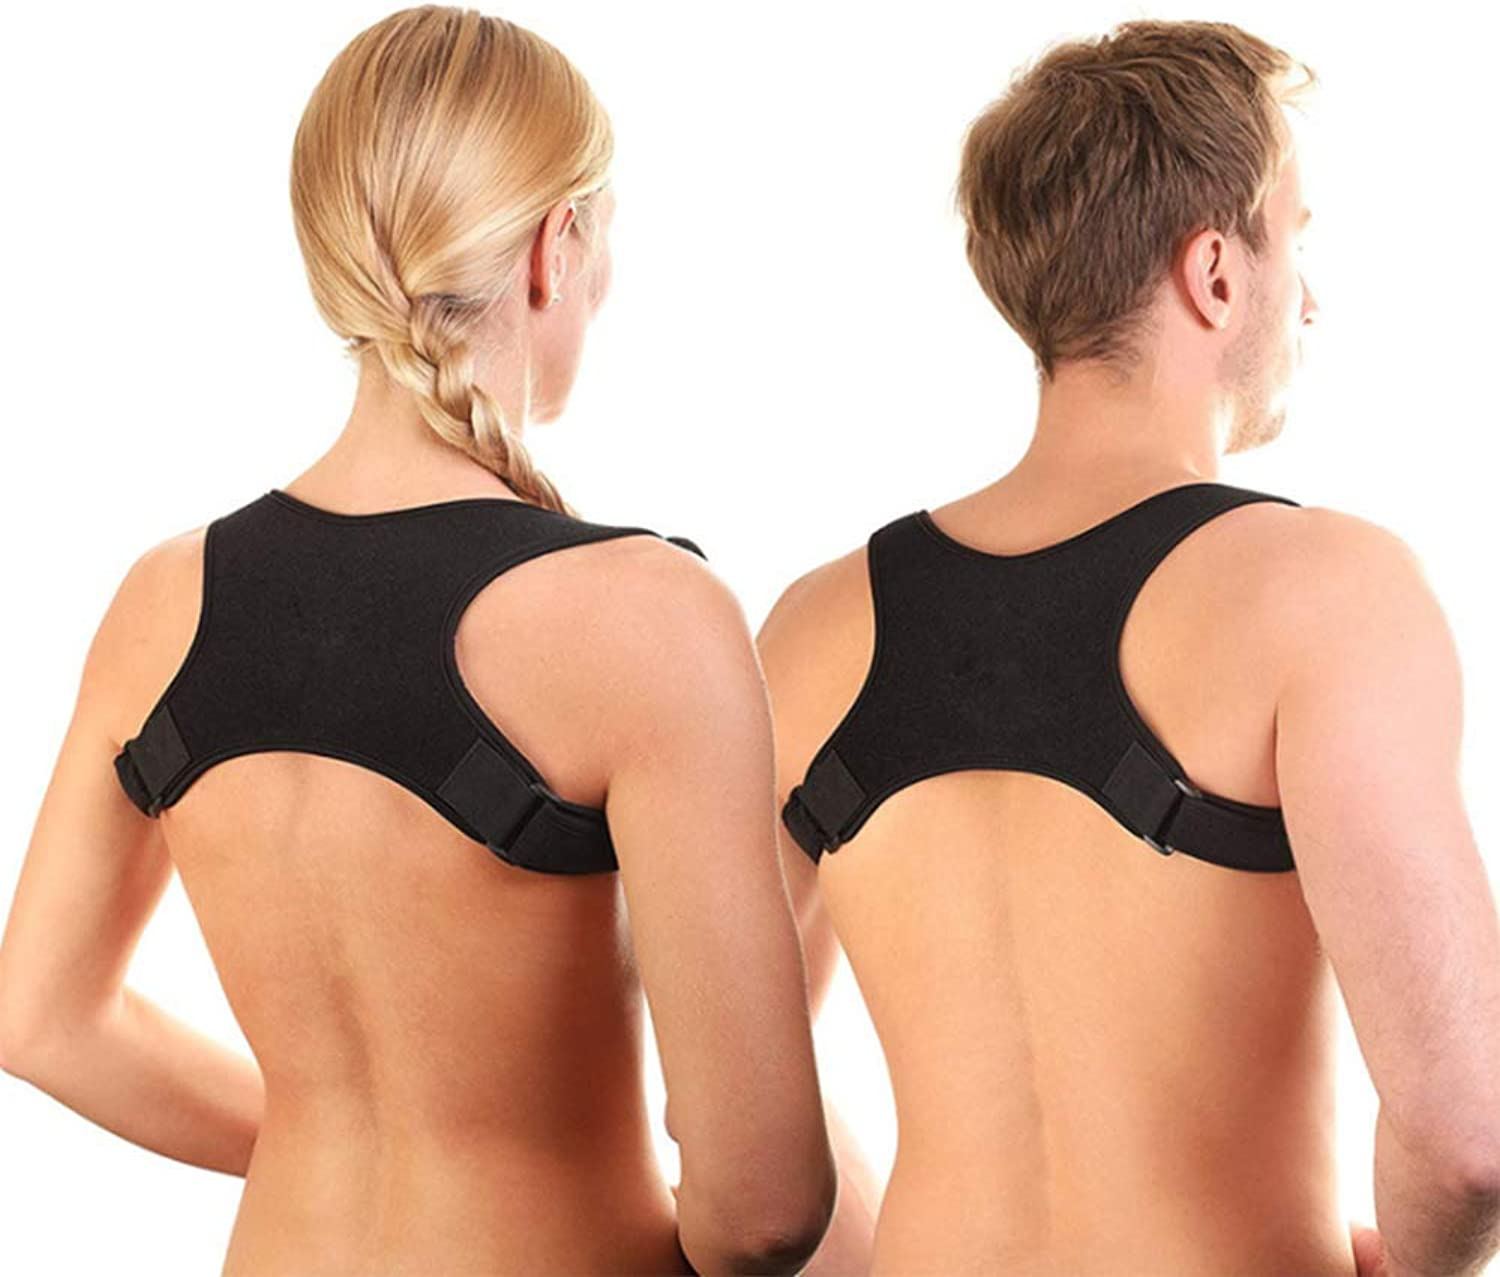 Posture Corrector for Men and Women  Comfortable Upper Back Brace Clavicle Support Device for Thoracic Kyphosis and Shoulder  Neck Pain Relief,L